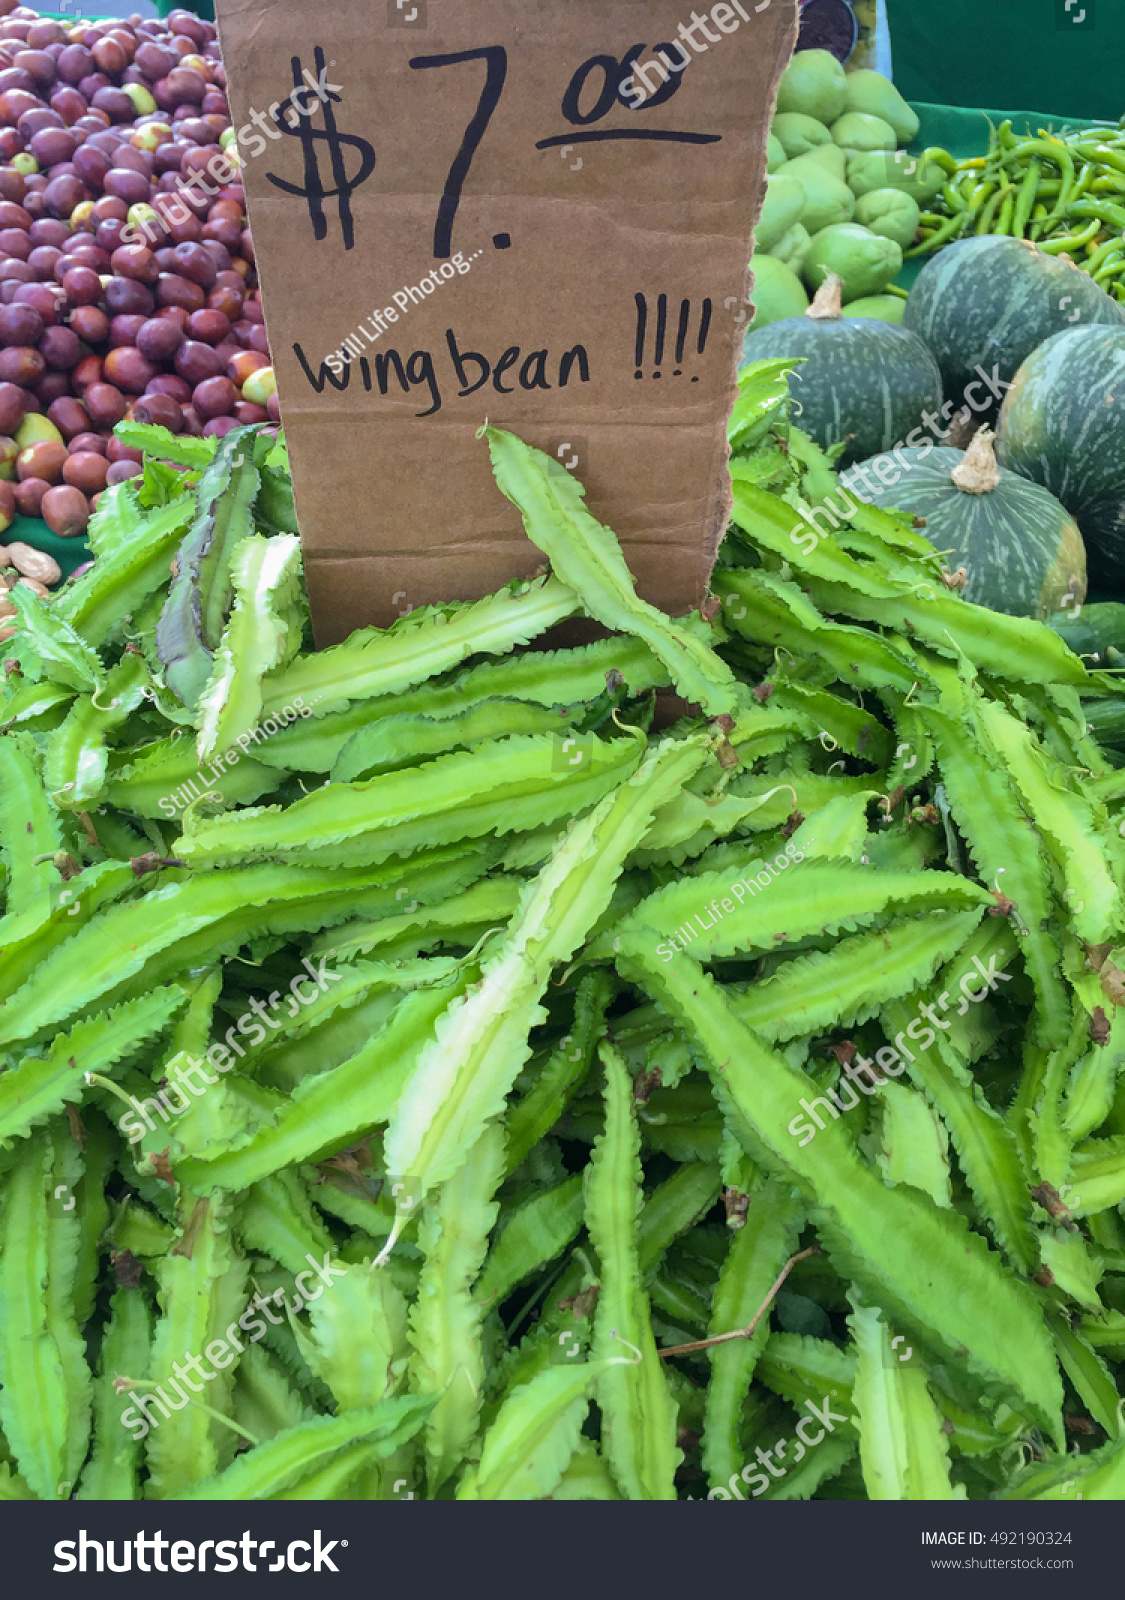 Fresh Winged Beans On Display Price Stock Photo (Edit Now) 492190324